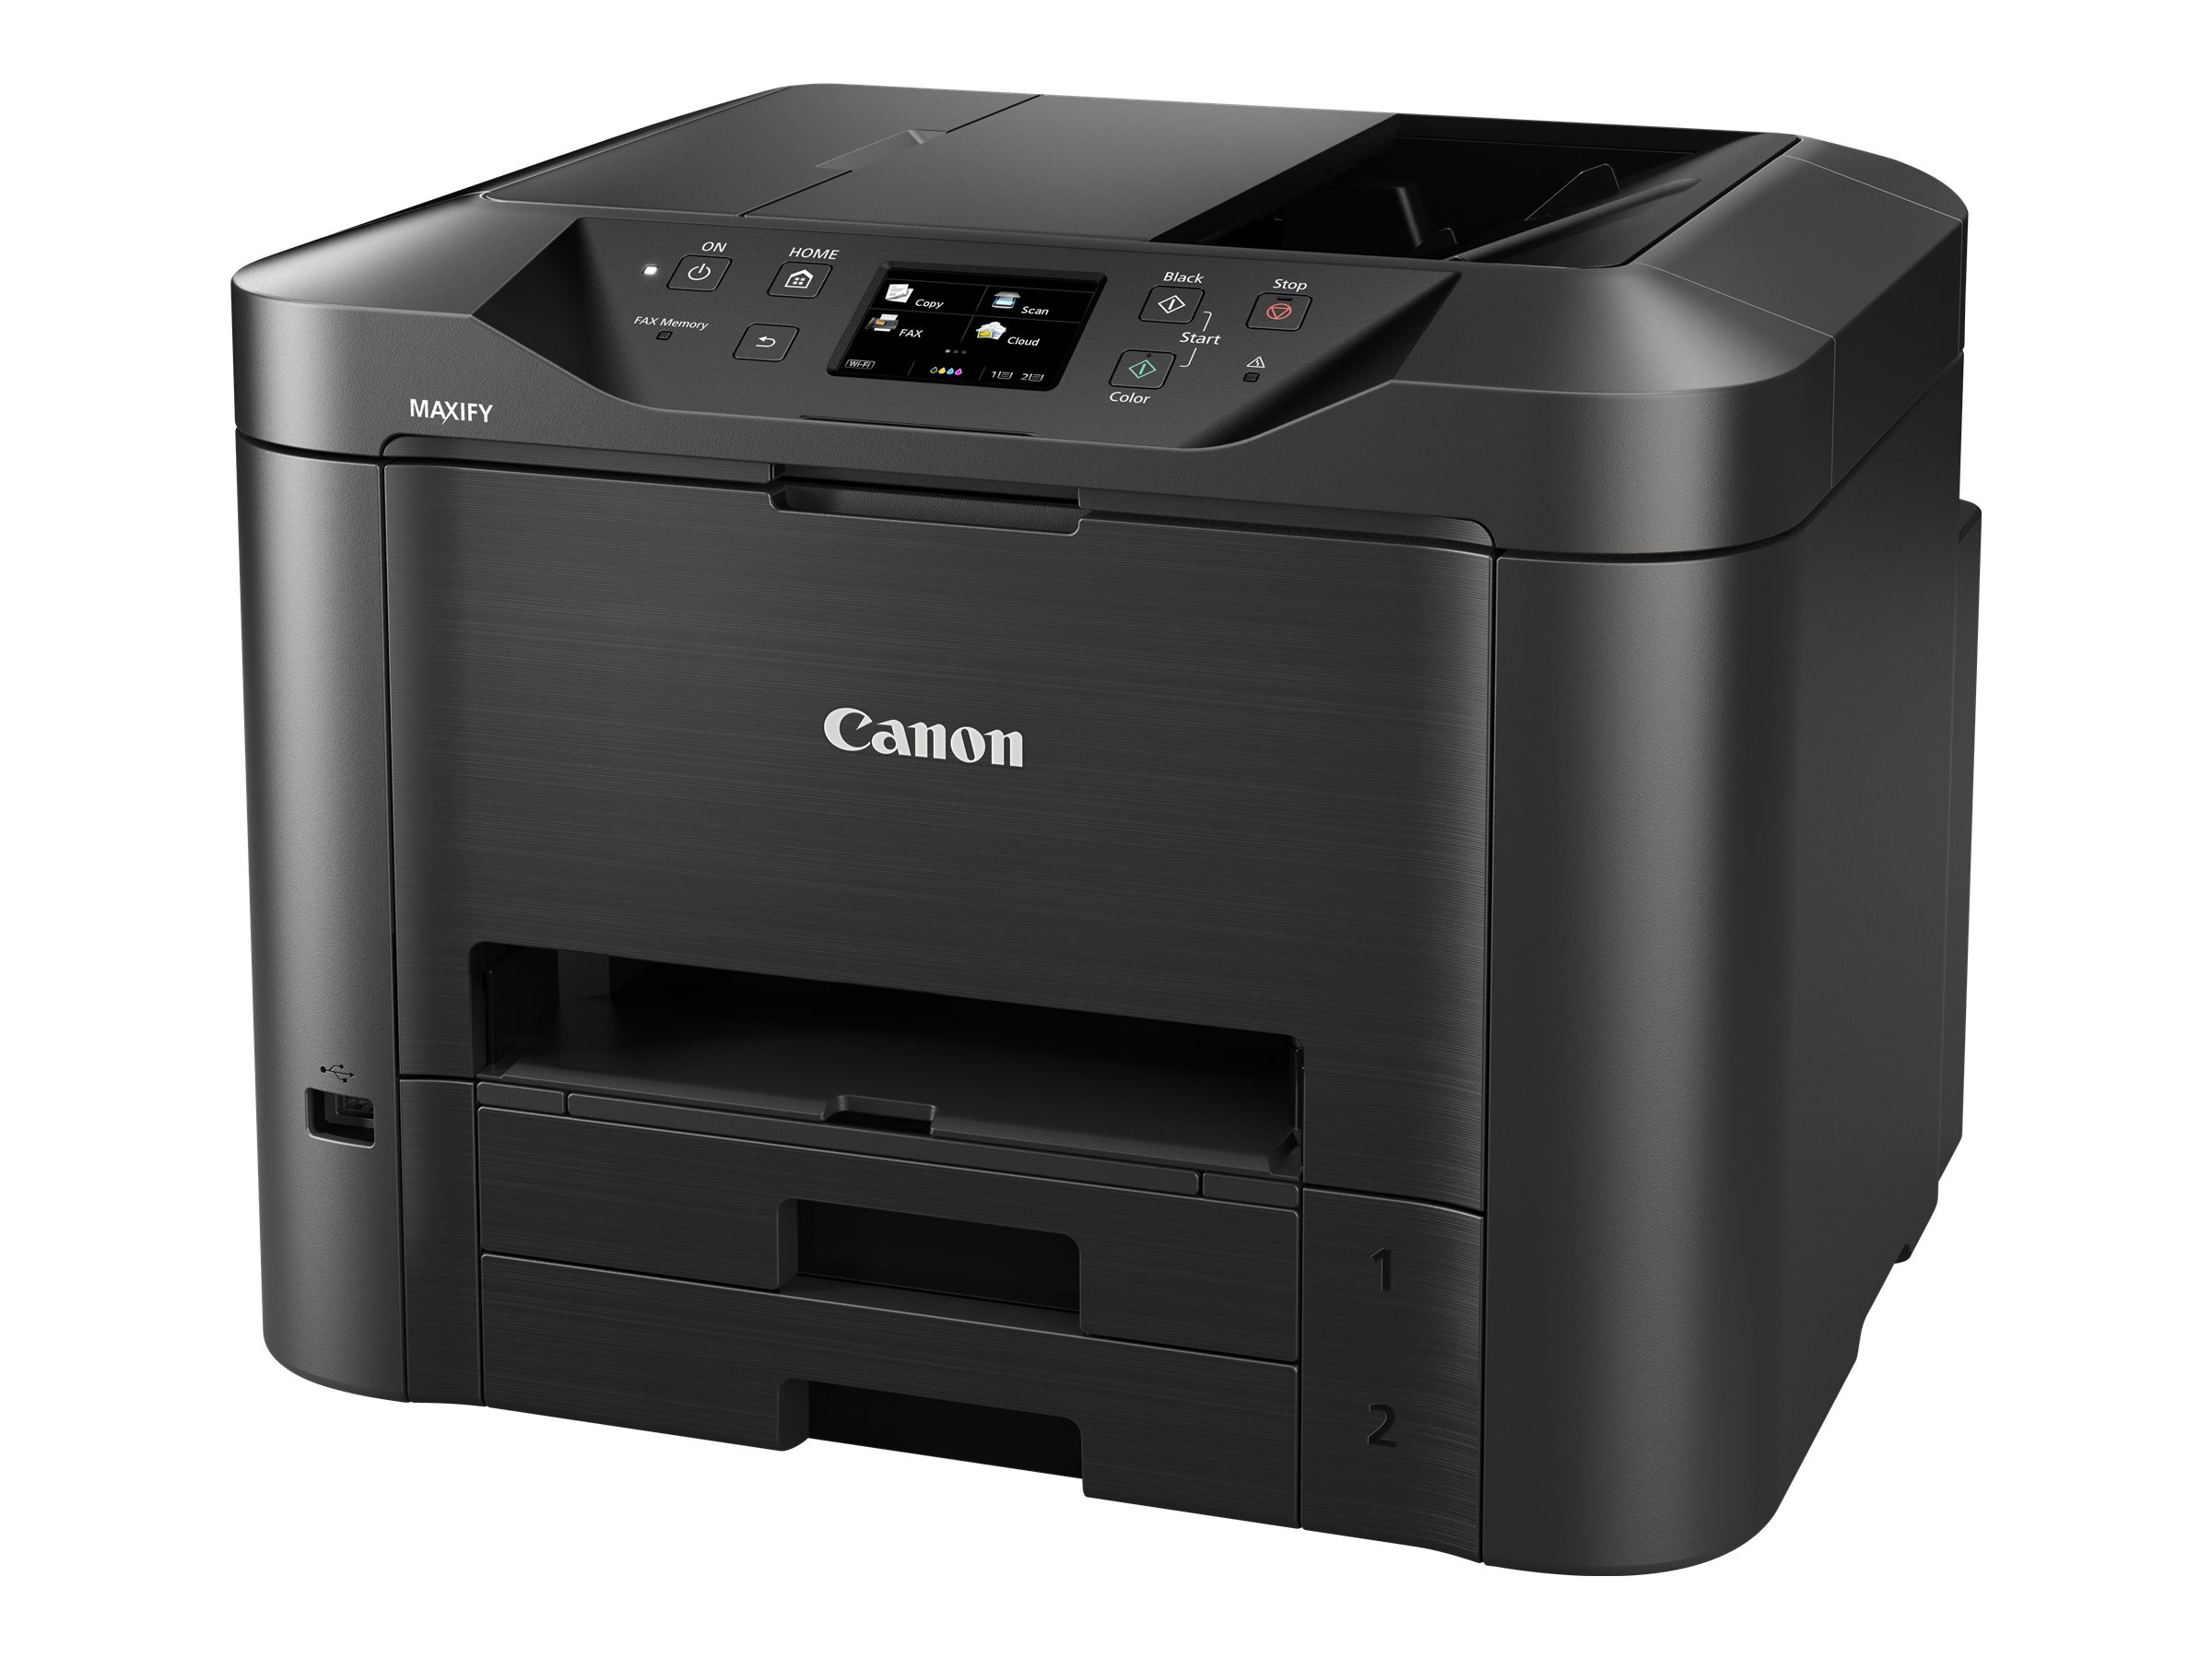 Canon MAXIFY MB5320 Wireless Small Office All-In-One Inkjet Color Printer